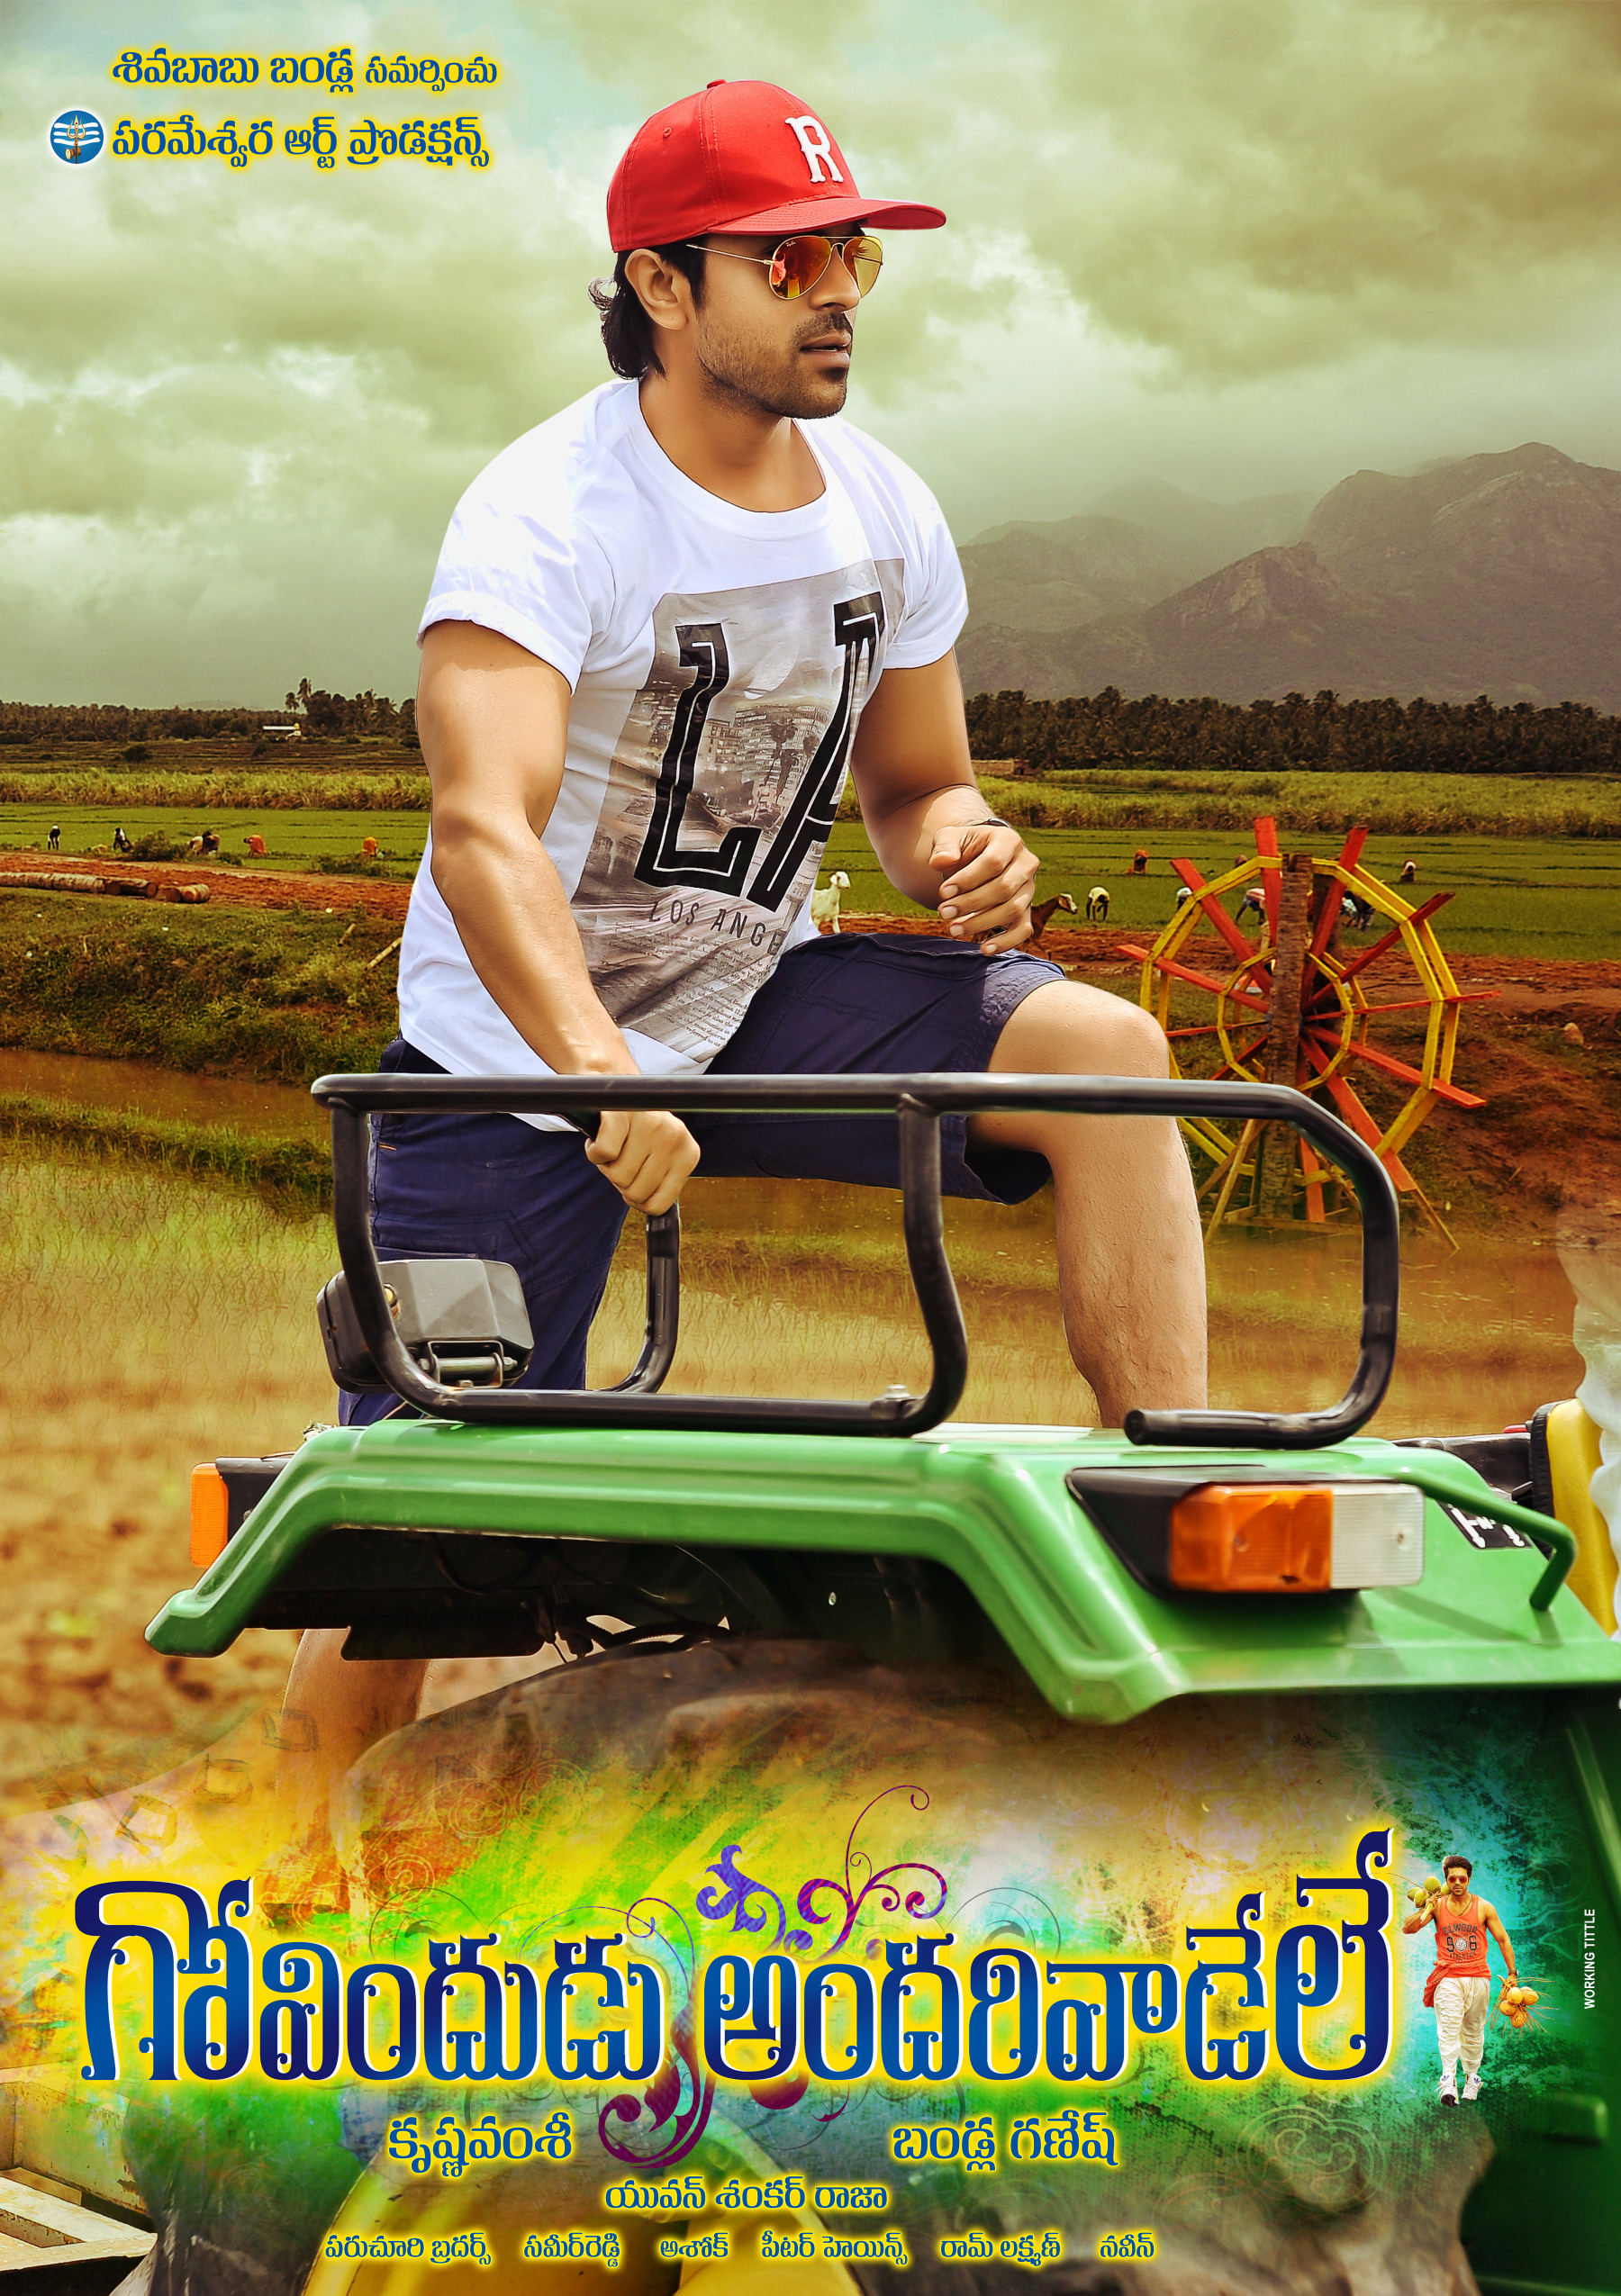 Govindudu Andarivadele Movie Stills16